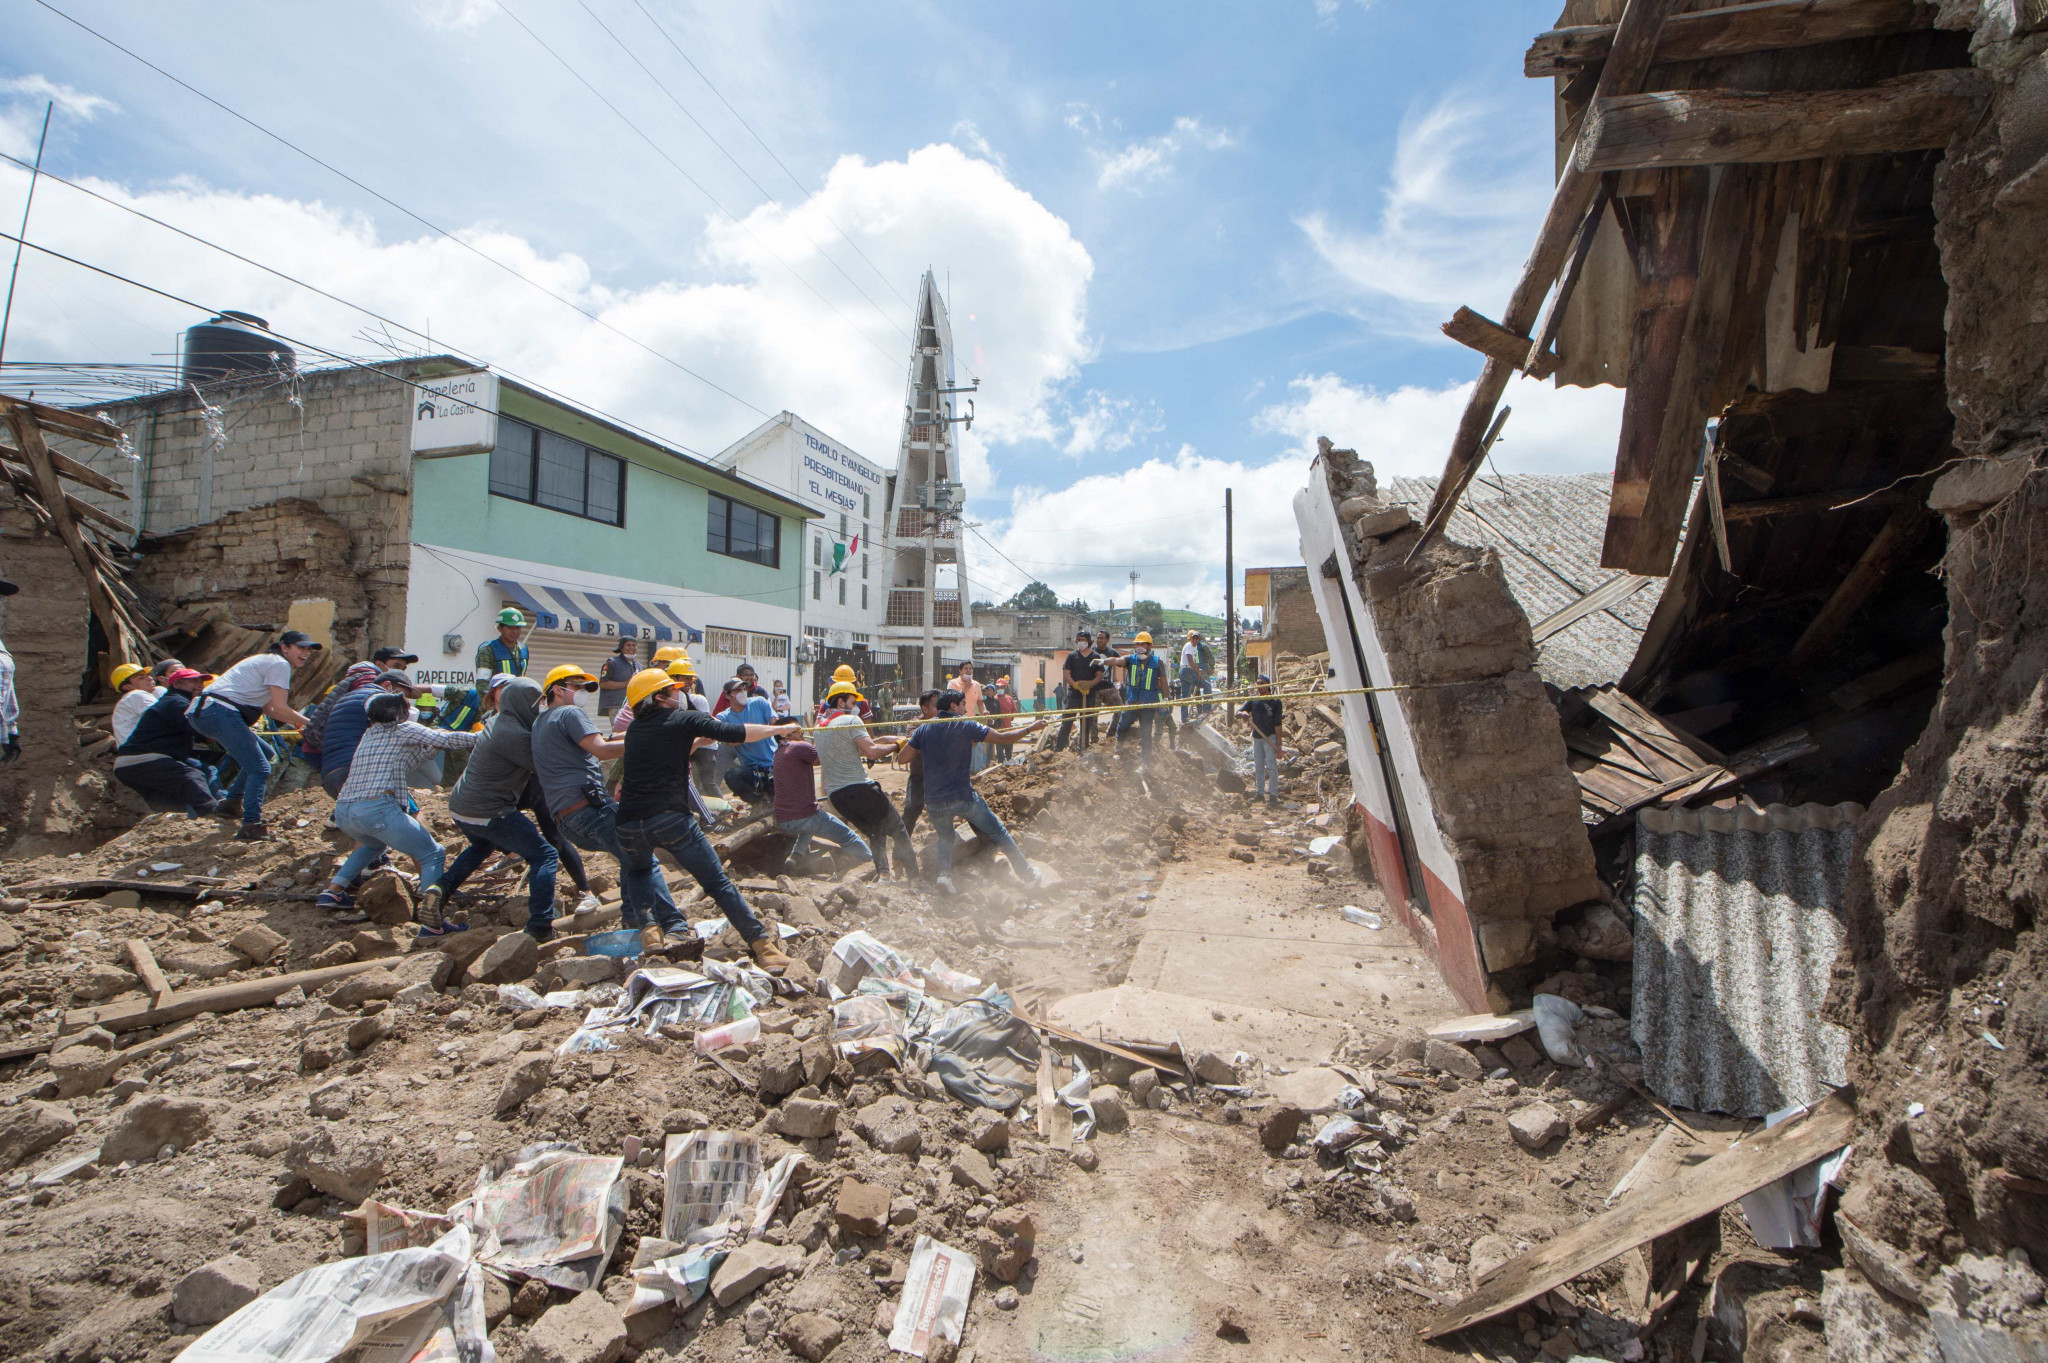 The earthquake has caused widespread damage in Mexico ©Getty Images